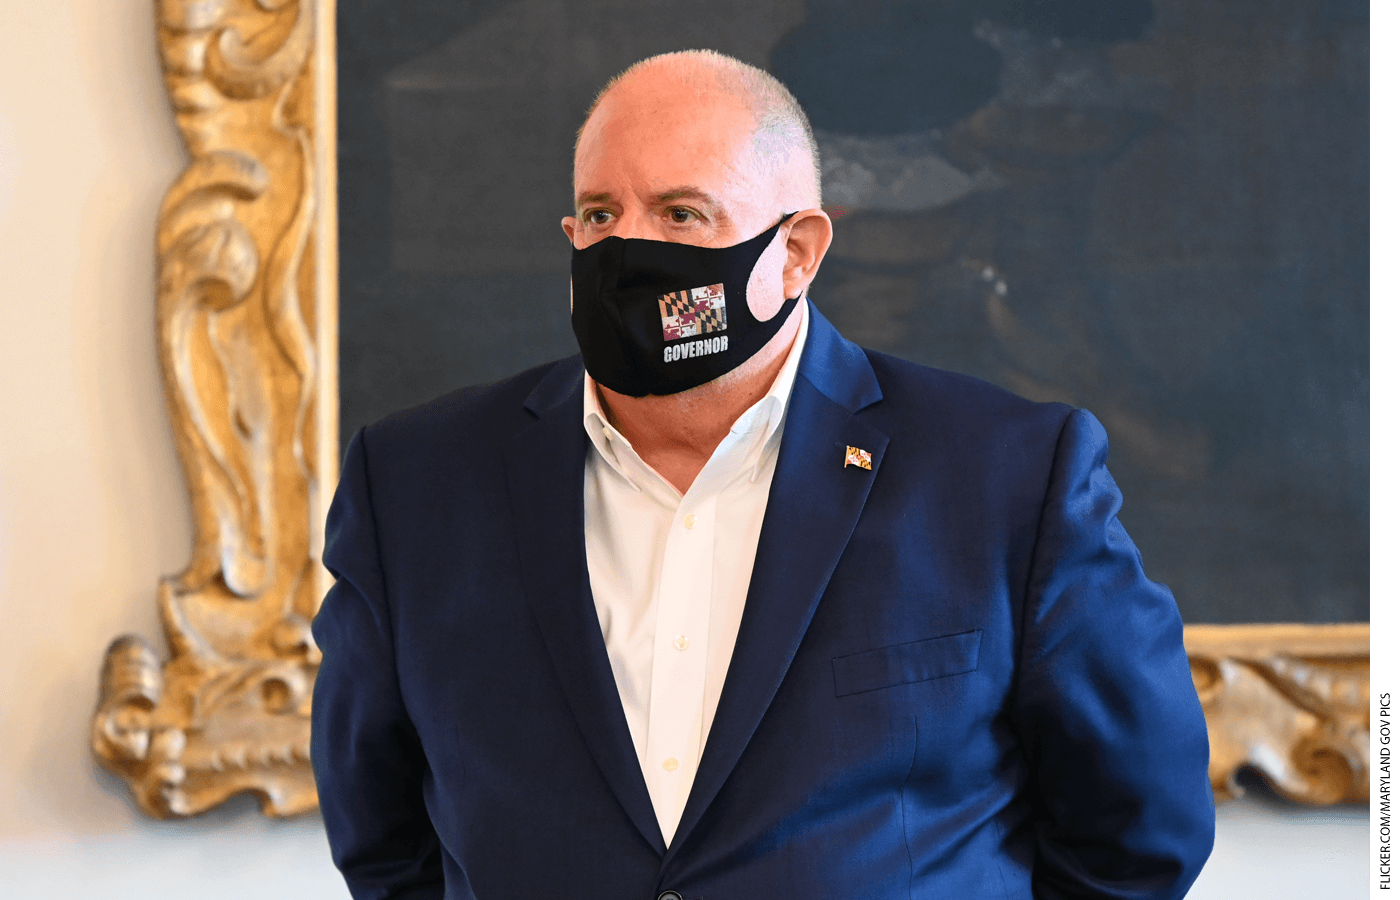 Maryland Governor Hogan